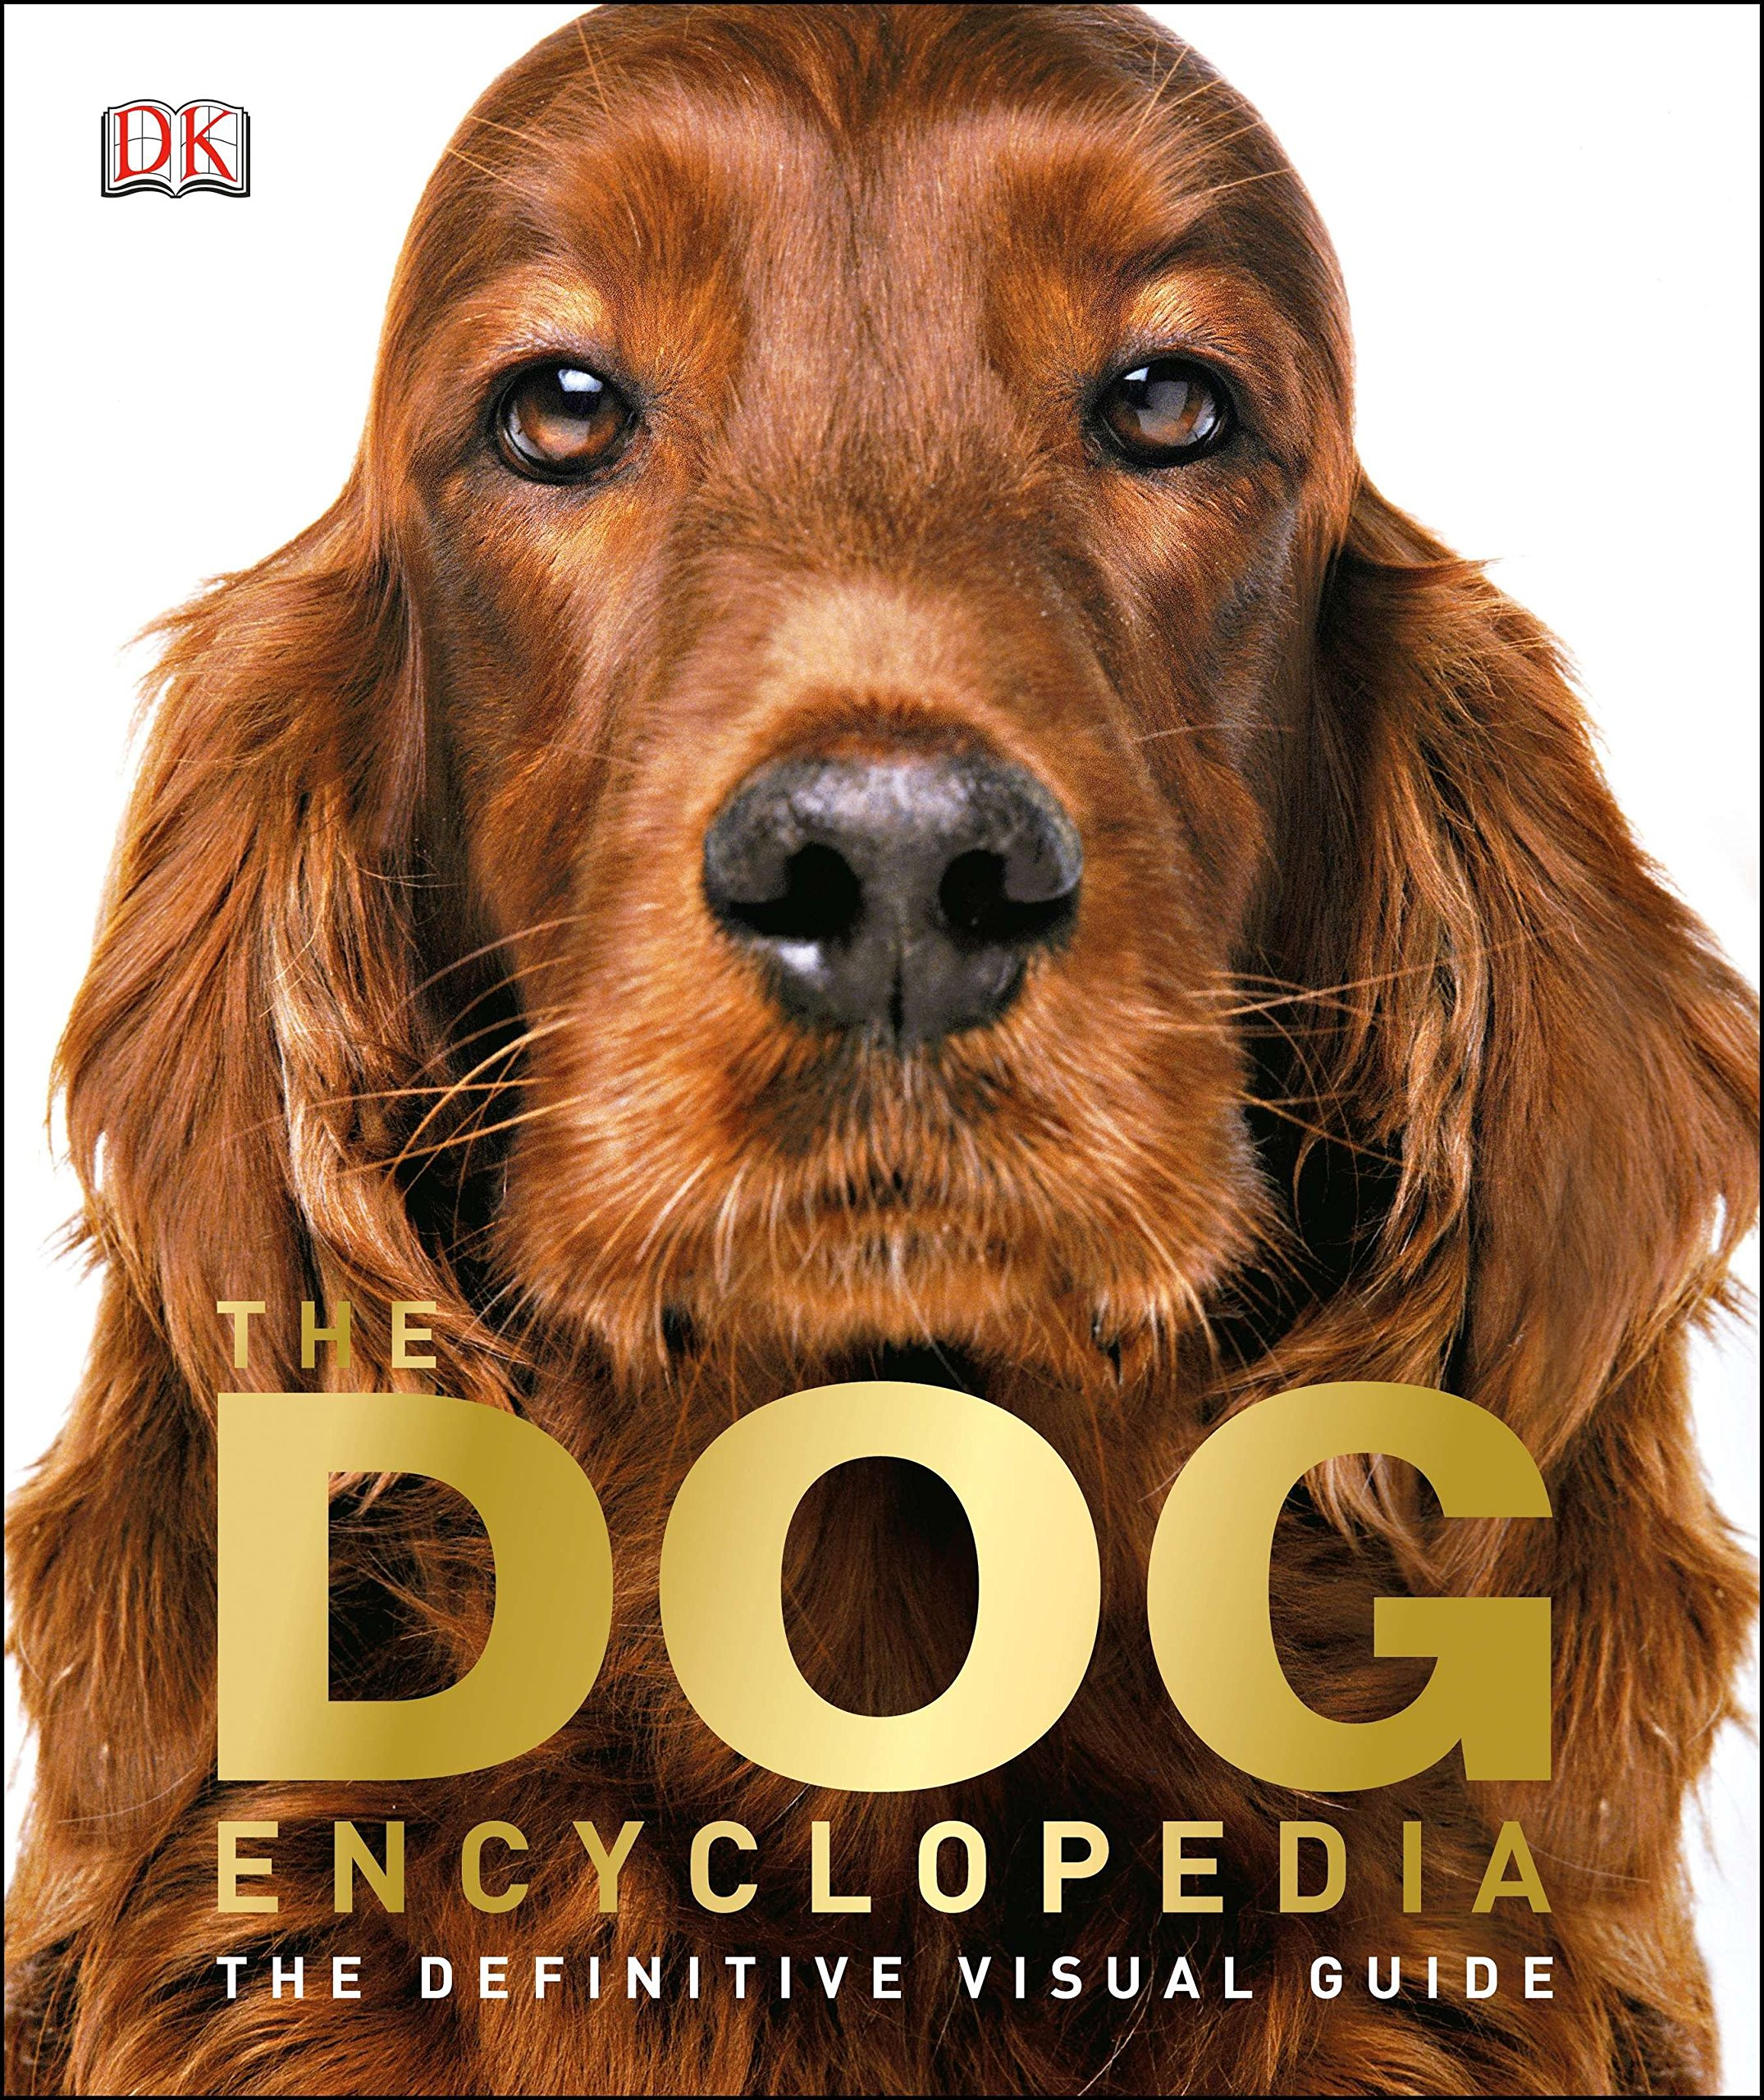 The Dog Encyclopedia: The Definitive Visual Guide by DK Publishing Dorling Kindersley